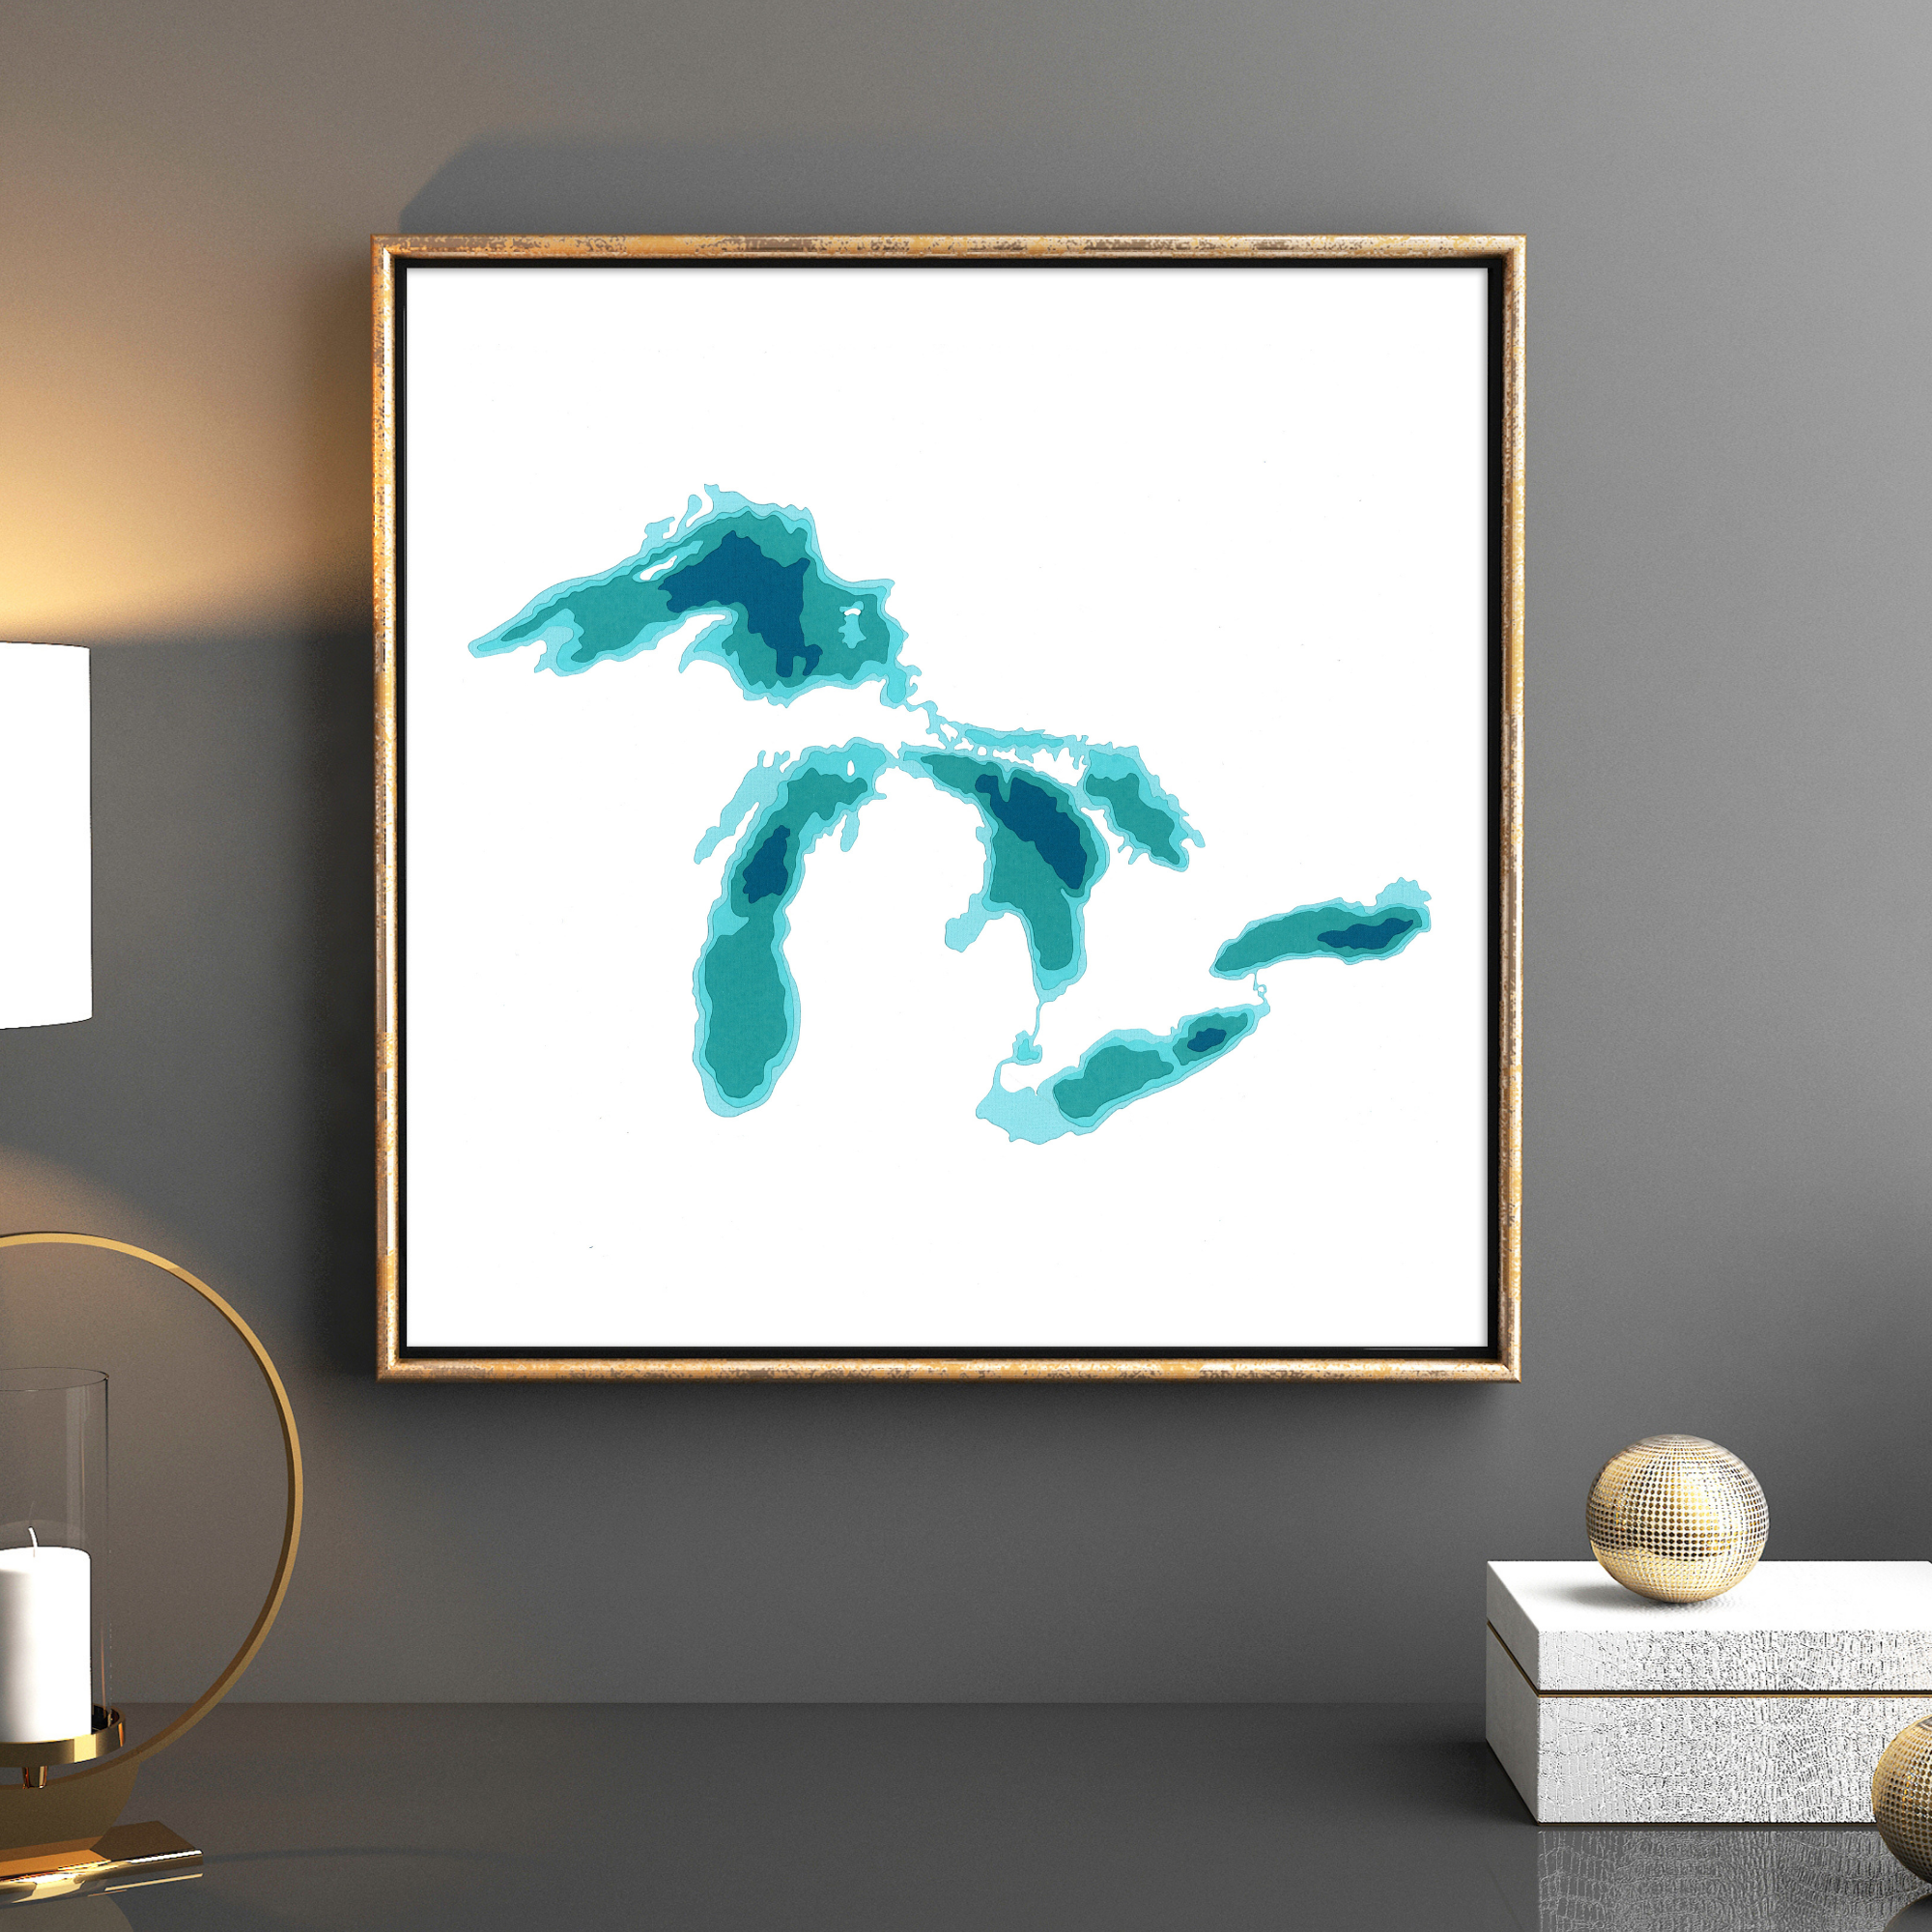 A framed image of the five great lakes in teal and dark blue. the background is white. the frame is gold. Cardtography.